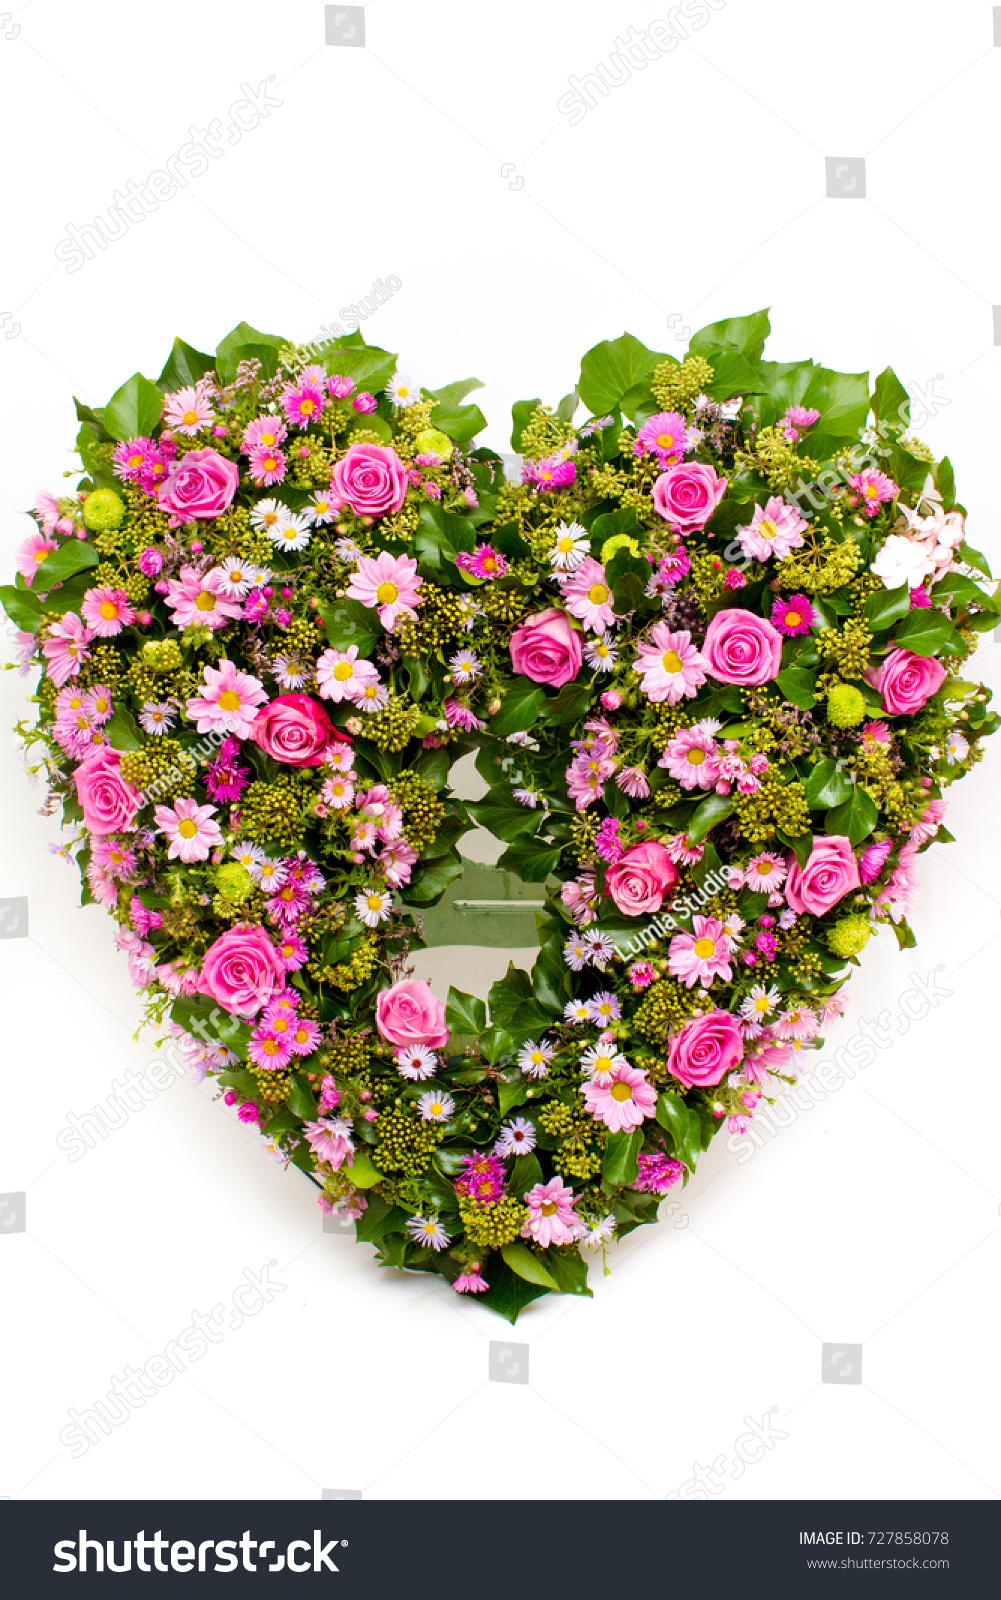 Flower Arrangement Wreath For Funerals In The Shape Of The Heart